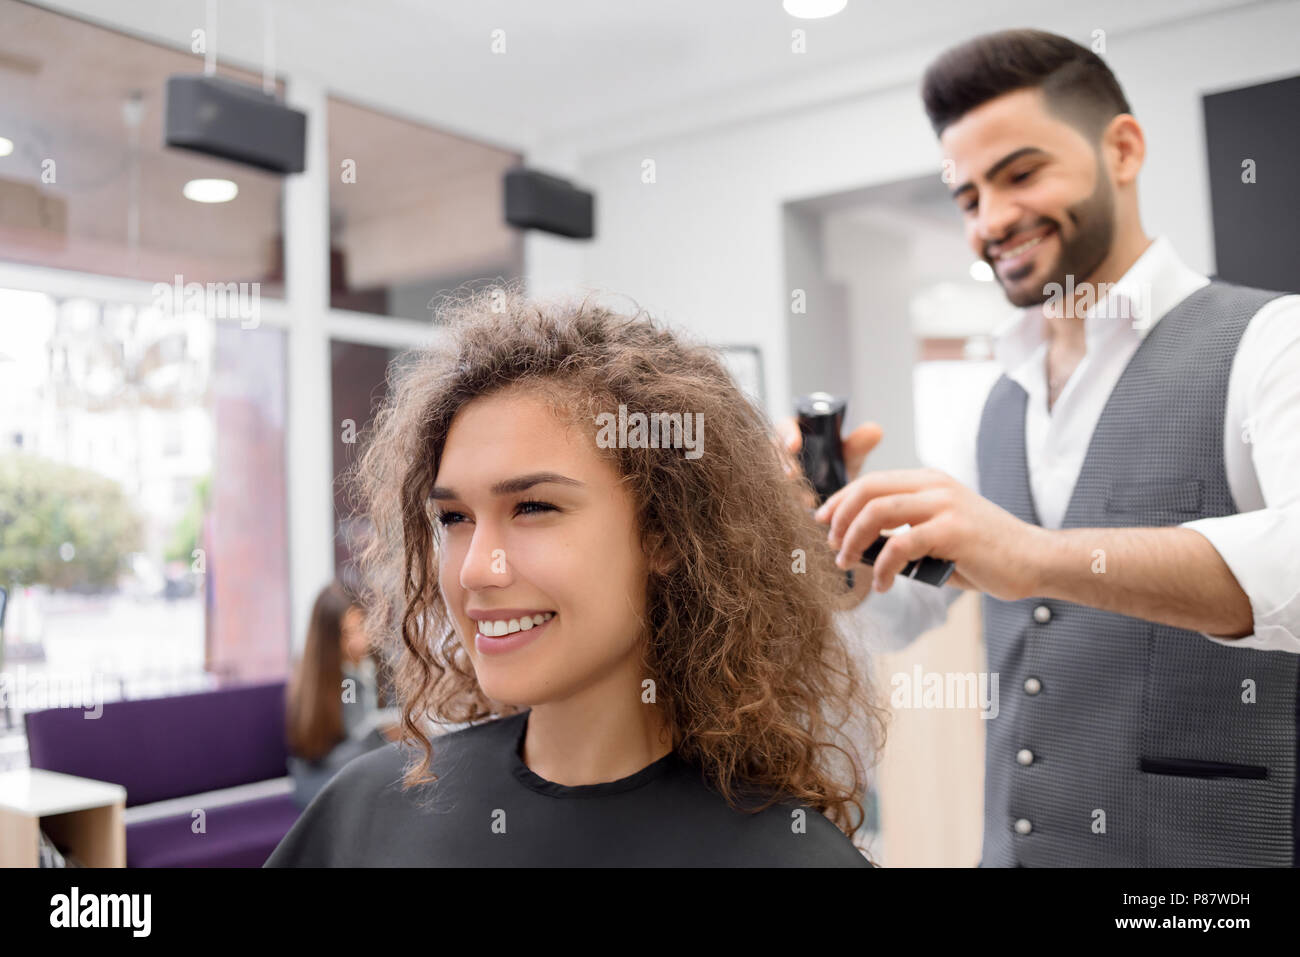 Young haircutter doing hairdress for smiling curly female client. Using plastic comb and barber machine. Wearing white shirt, grey waistcoat. Working  - Stock Image